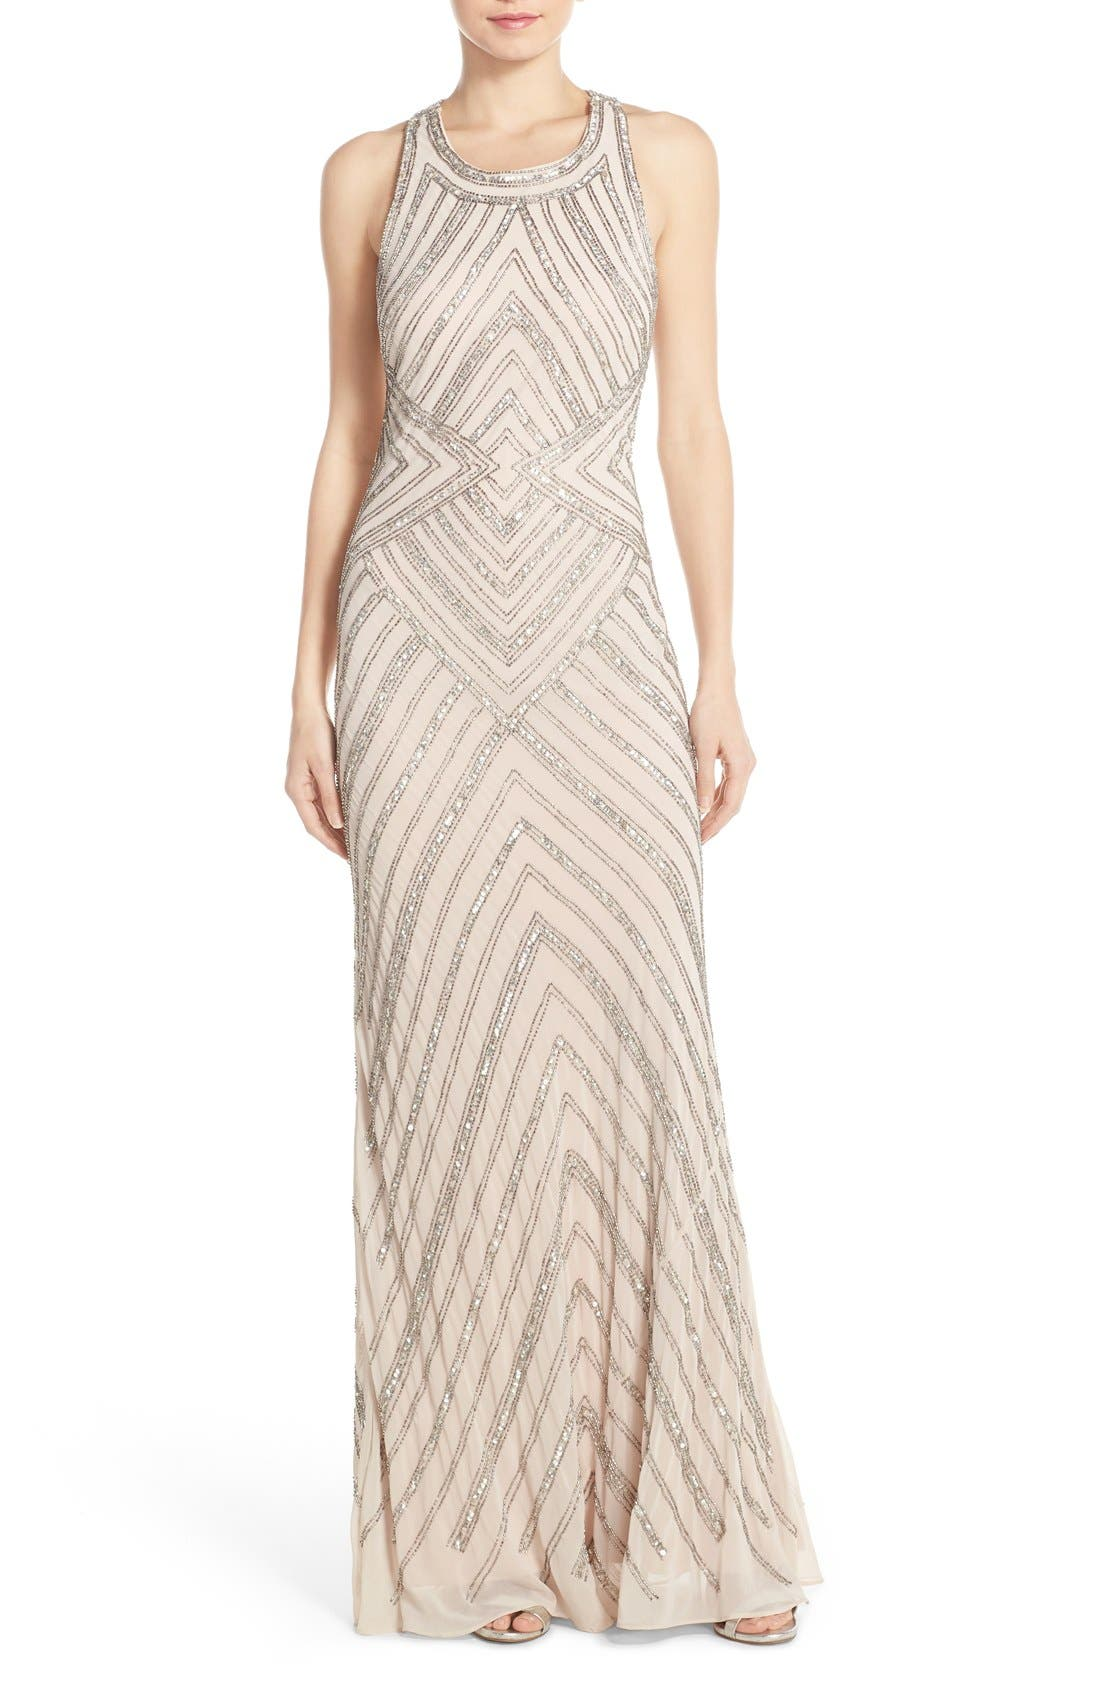 Alternate Image 1 Selected - Adrianna Papell Embellished Cross Back Gown